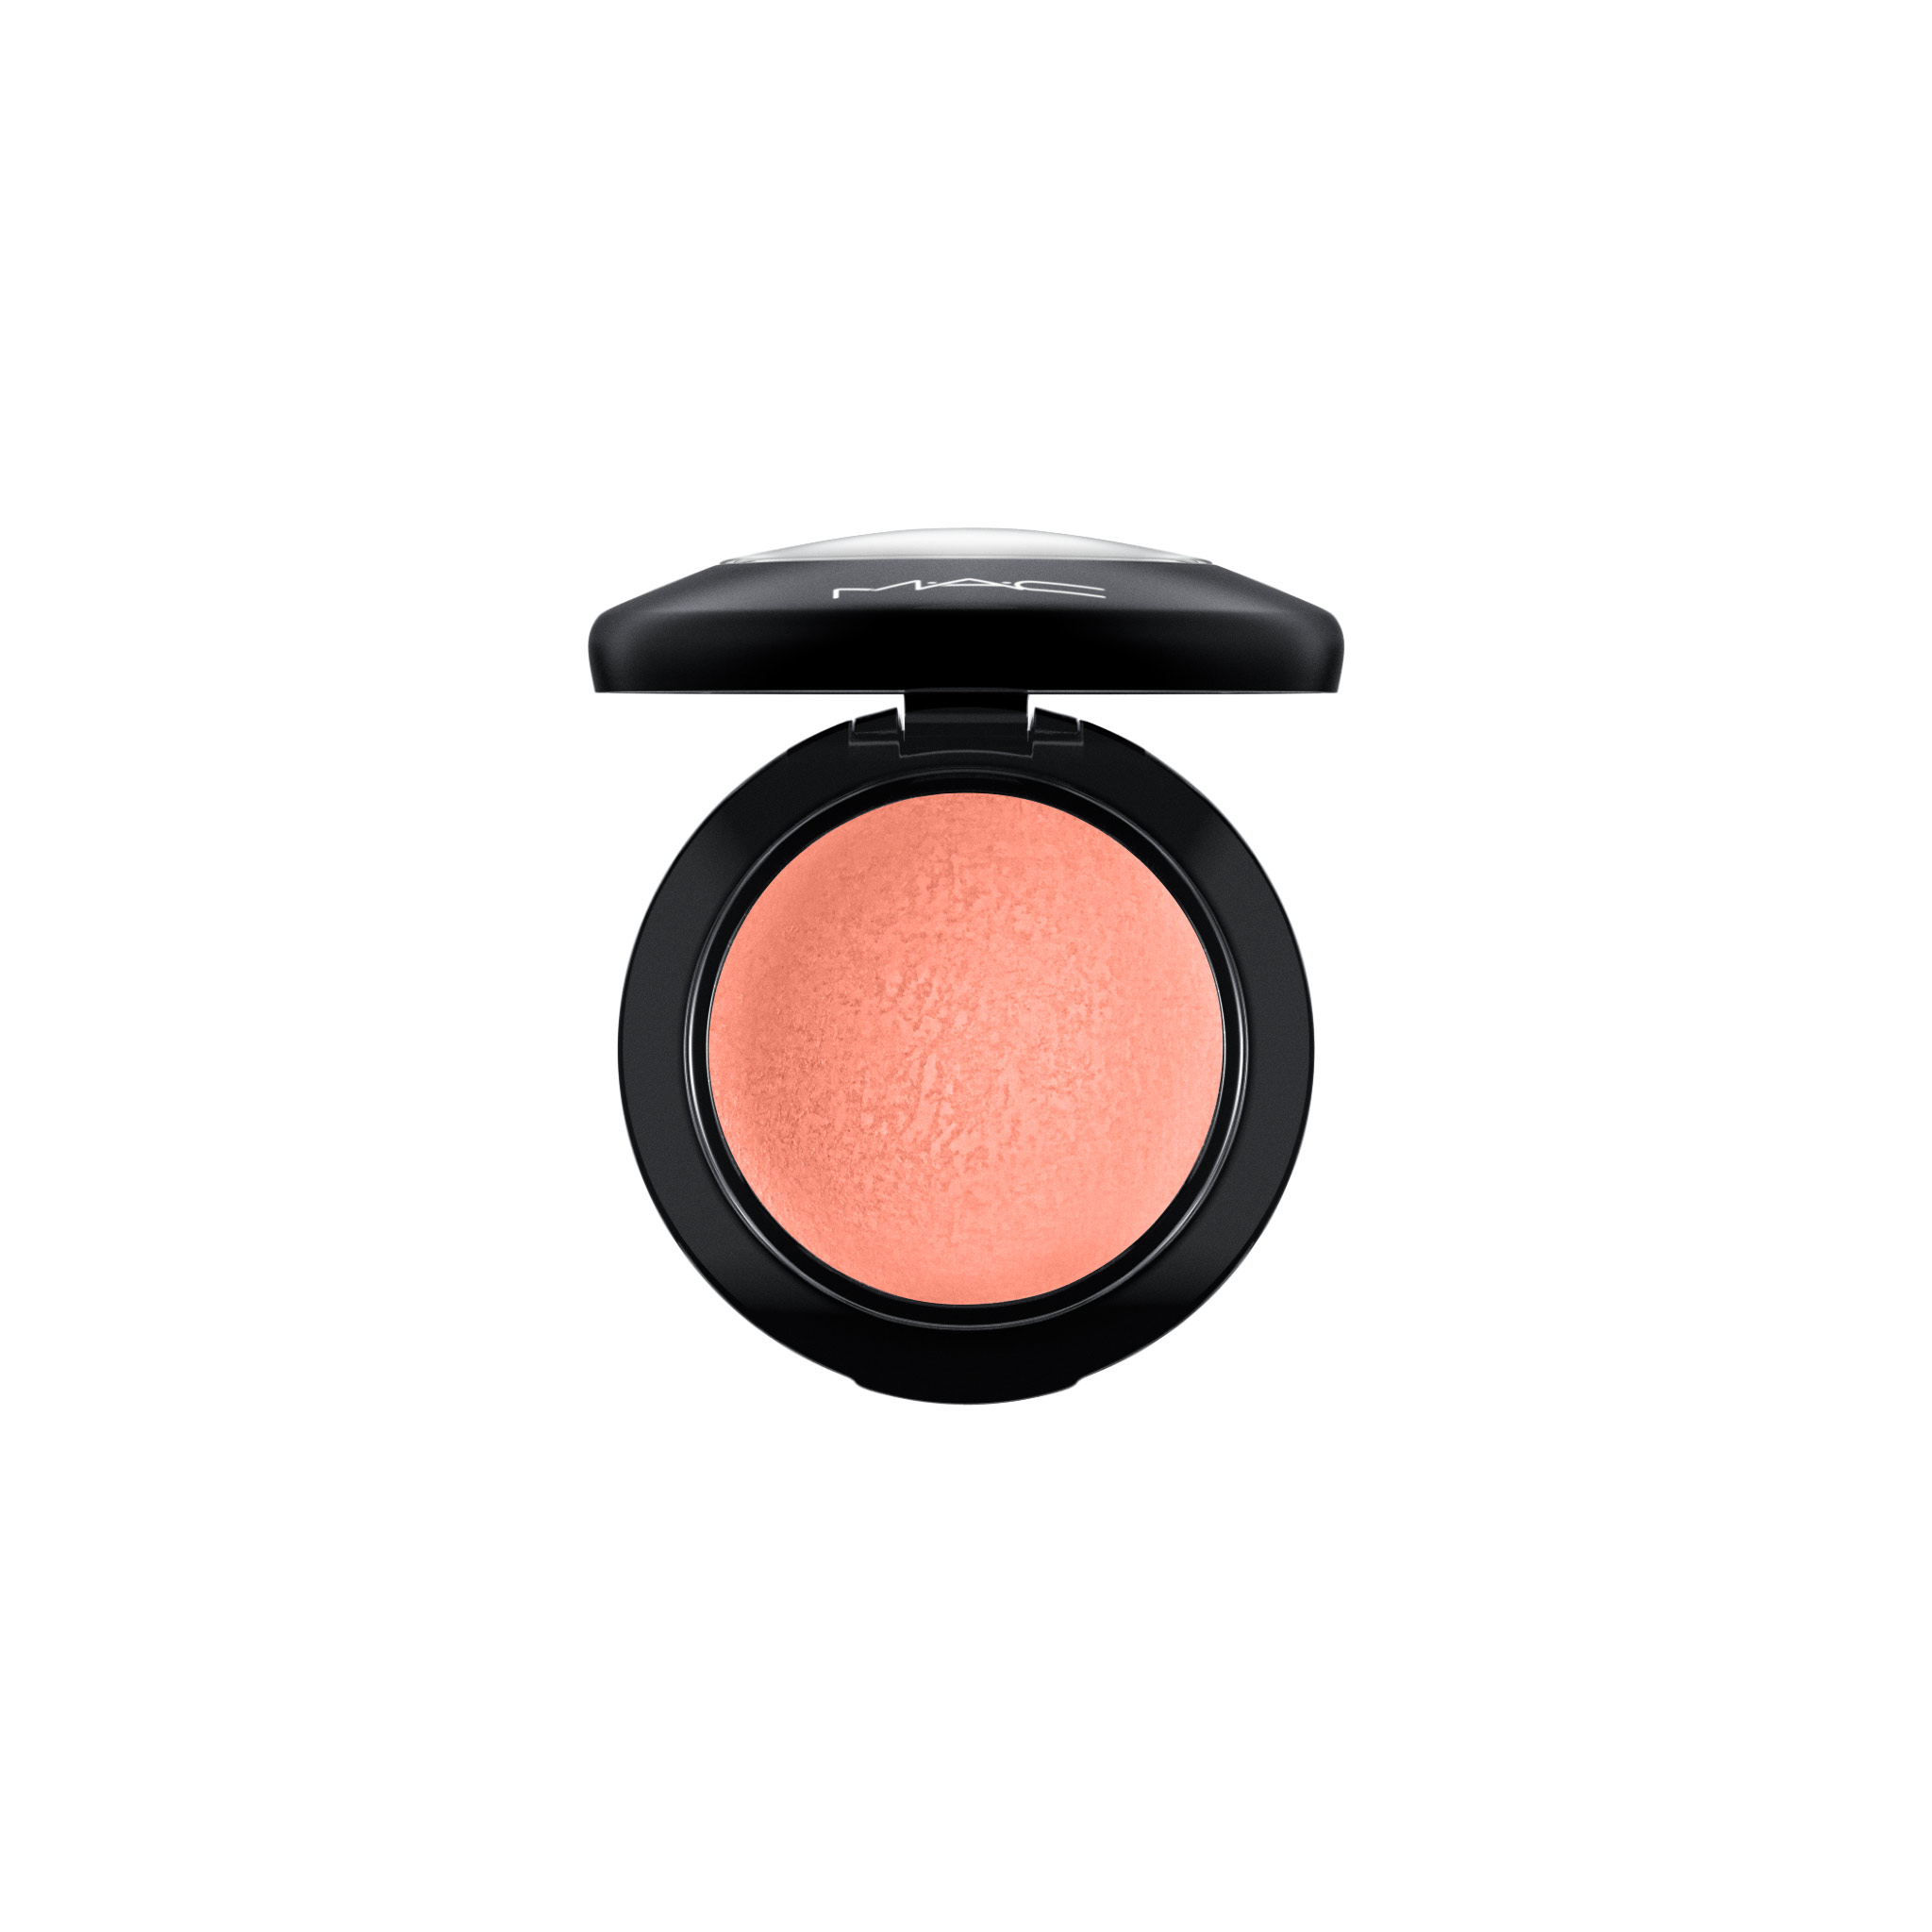 An image of MAC Mineralize Blush 3.5g Group 2 - LIKE ME LOVE ME